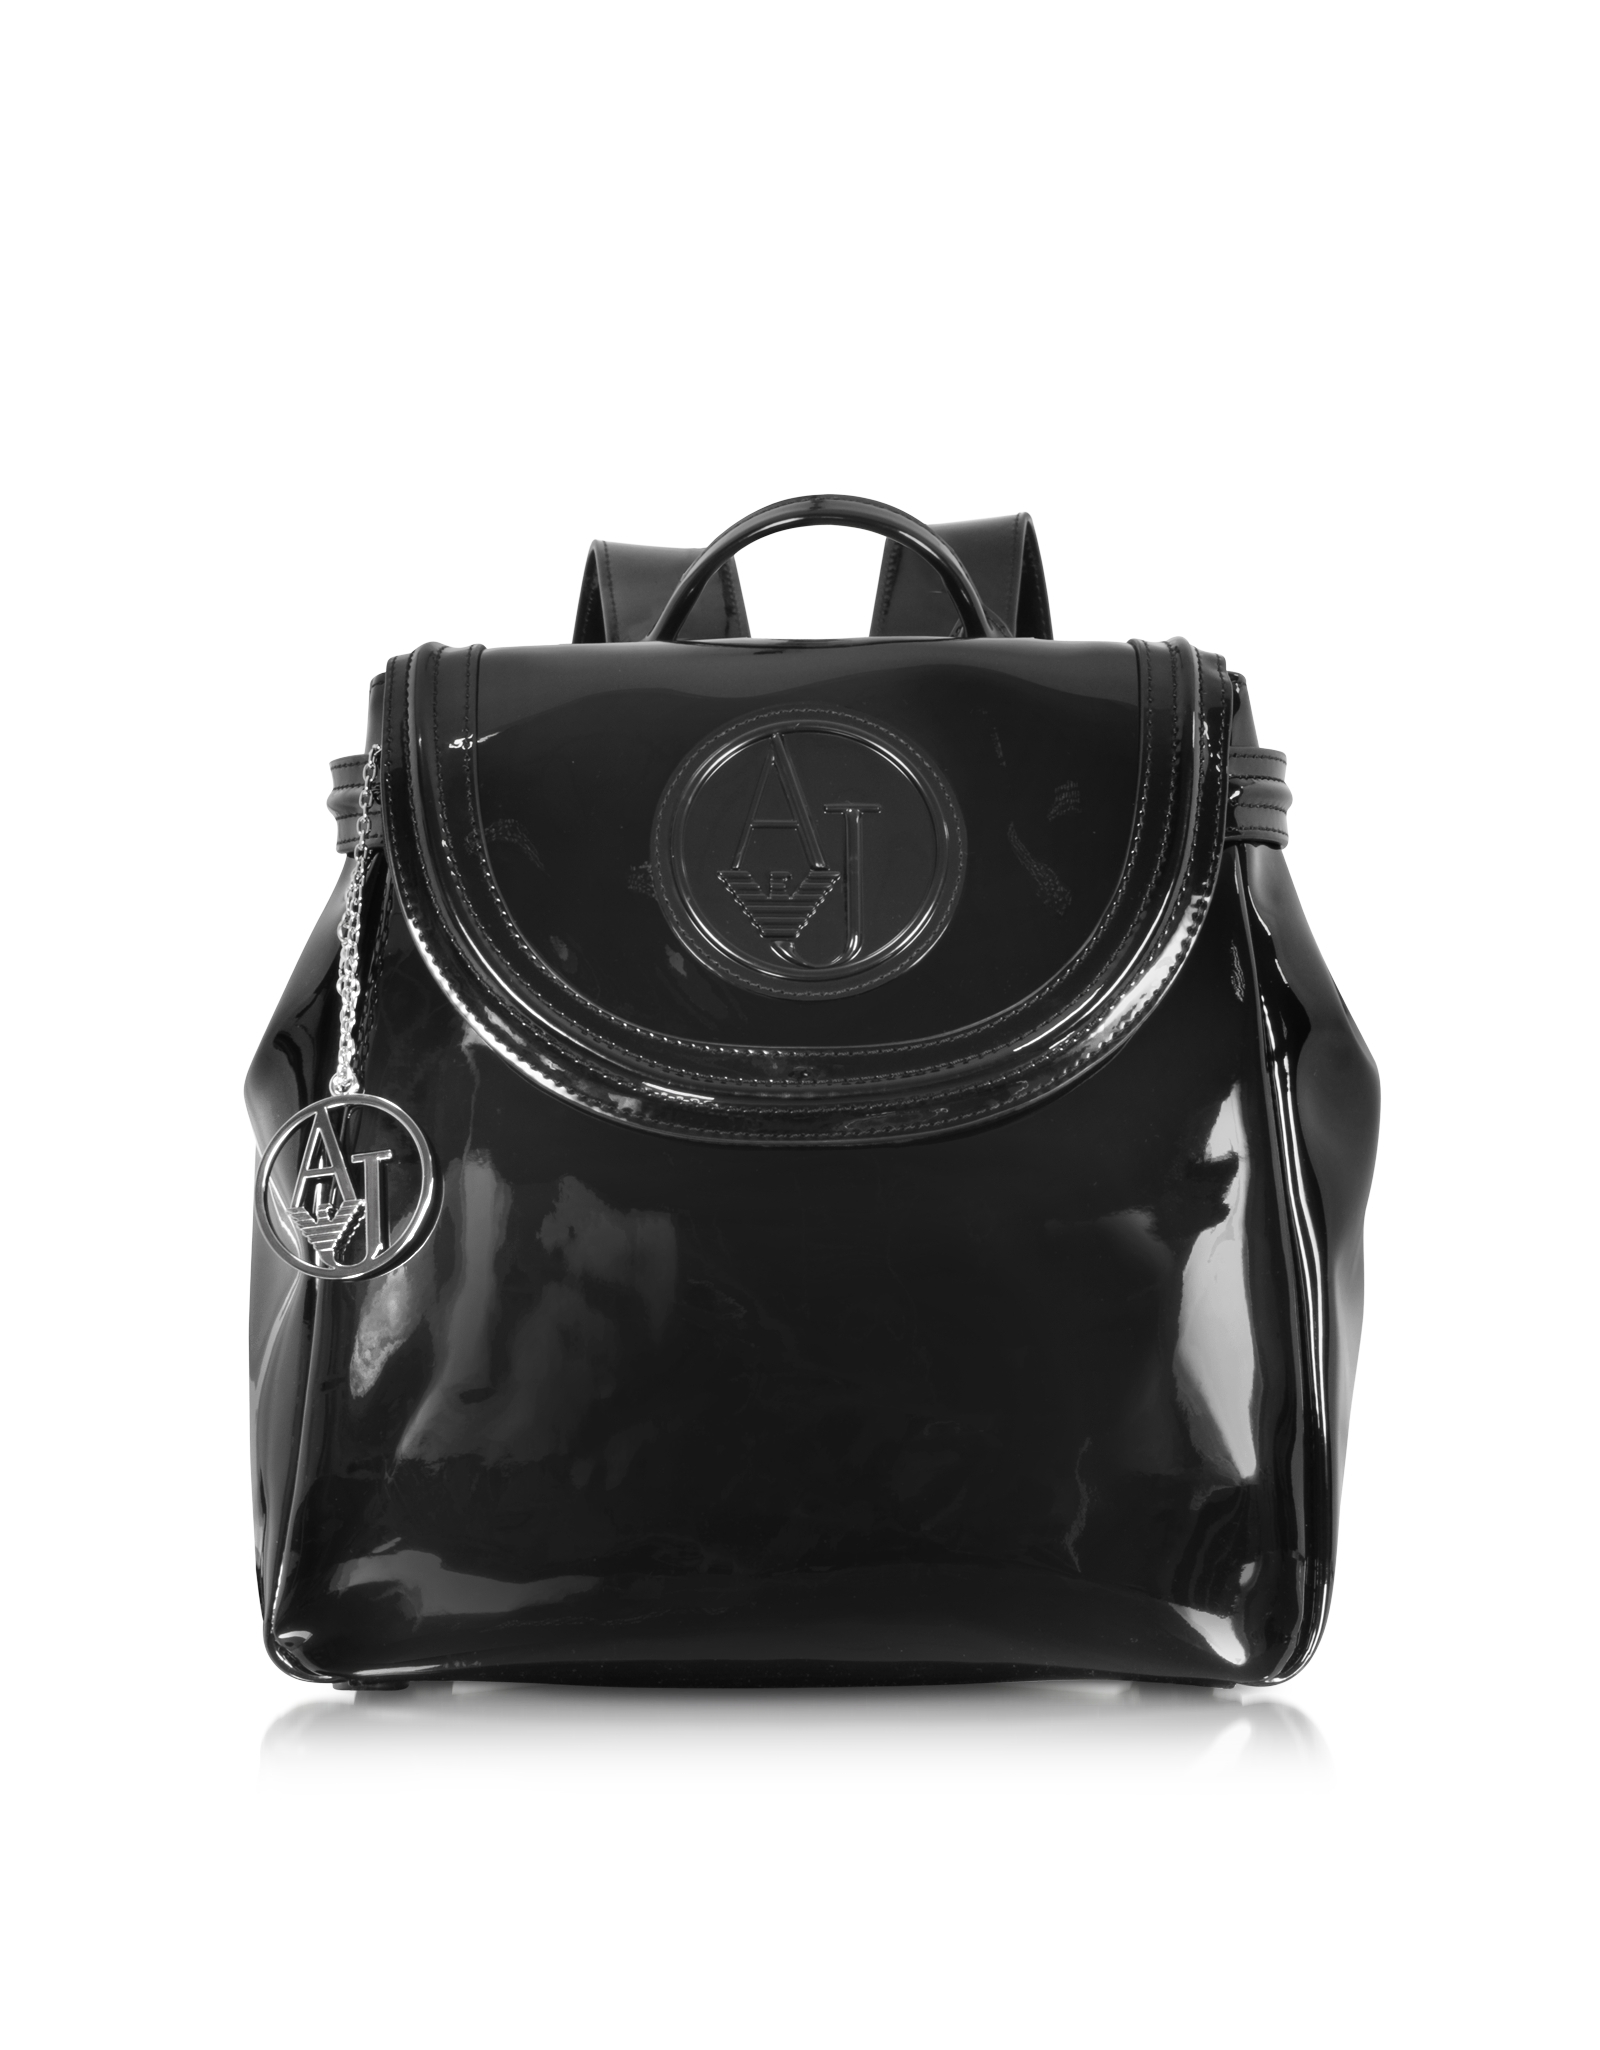 21cd8386407 Lyst - Armani Jeans Black Patent Eco Leather Backpack in Black